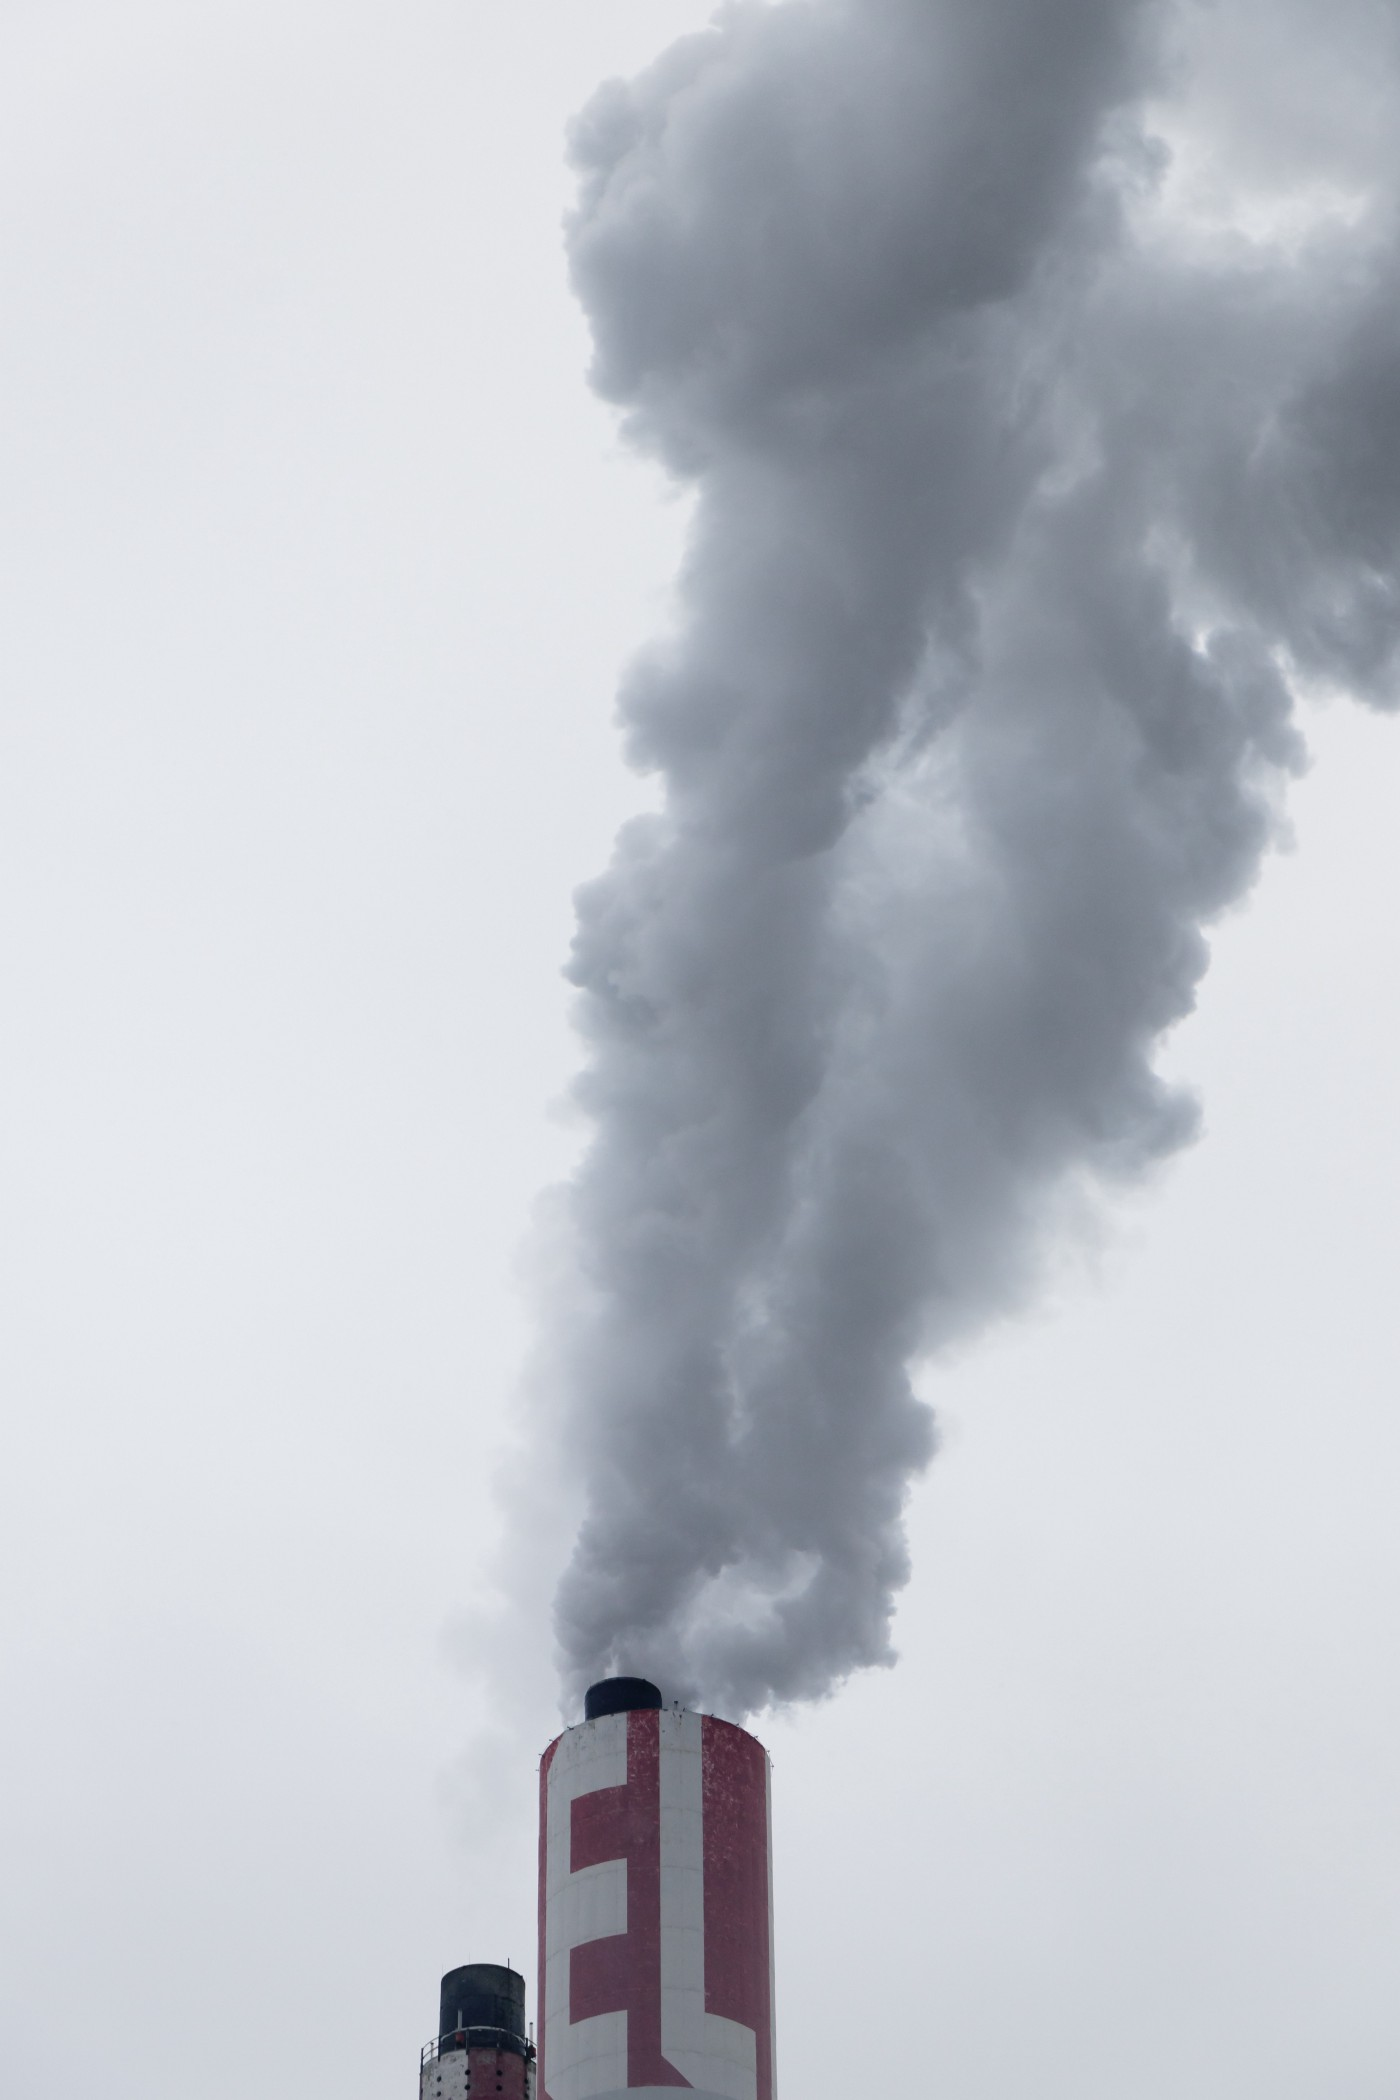 This is a picture of a smokestack.